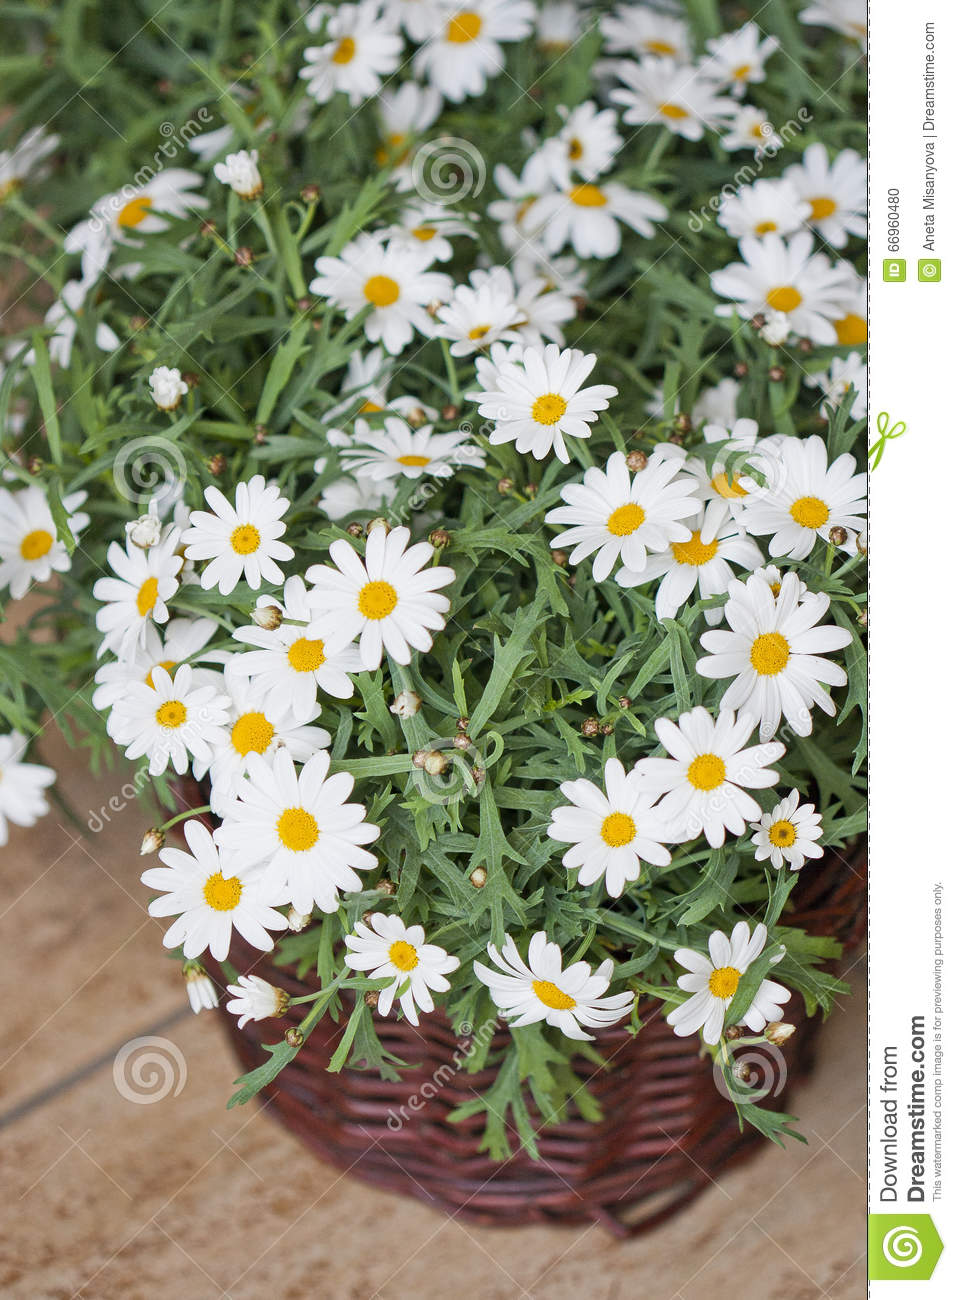 Daisy Plant In Flowershop Stock Photo Image Of Campanula 66960480